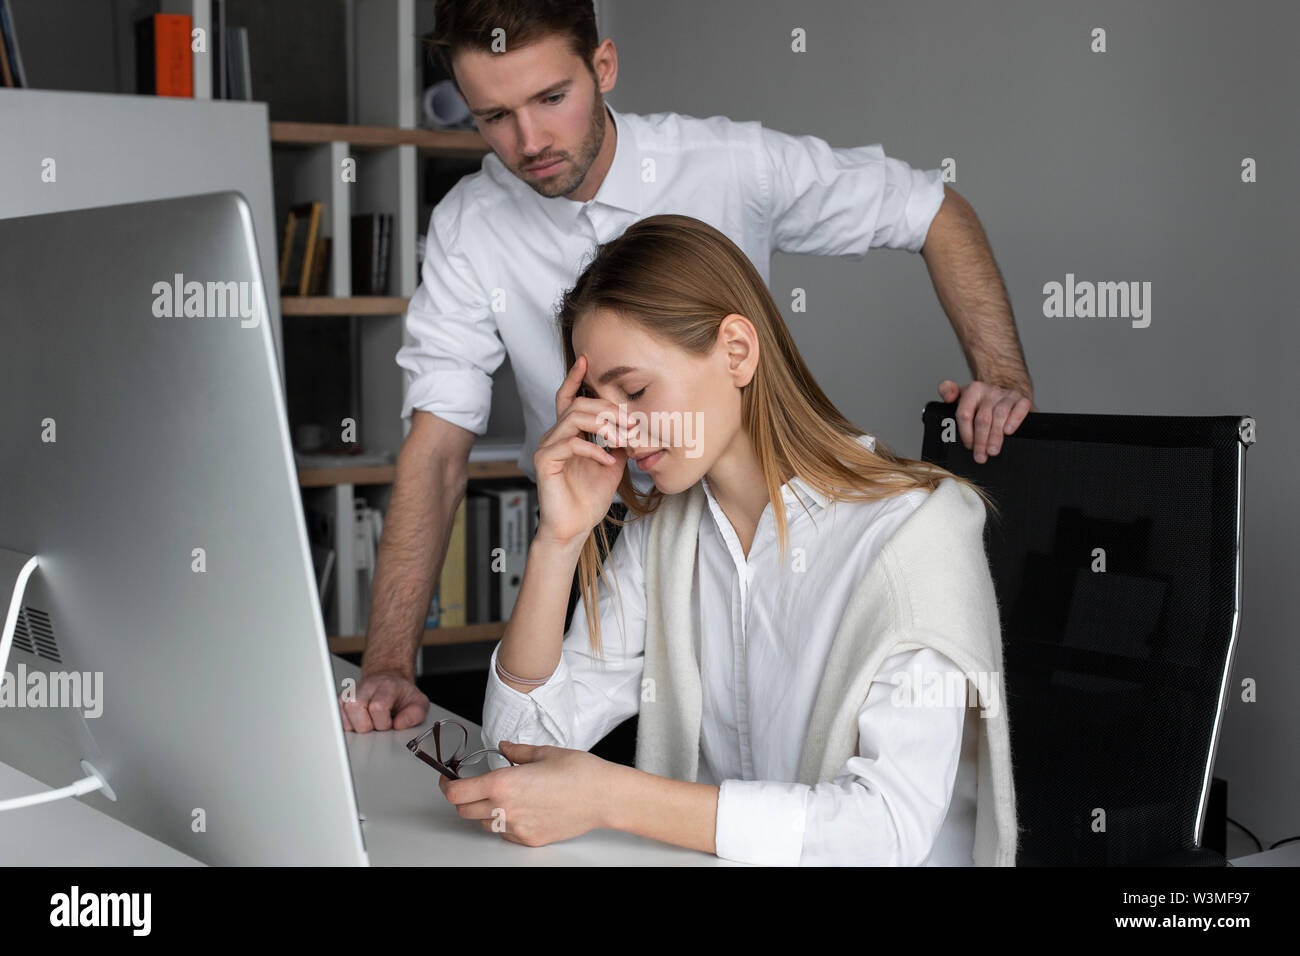 Upset businesswoman and sympathetic colleague - Stock Image